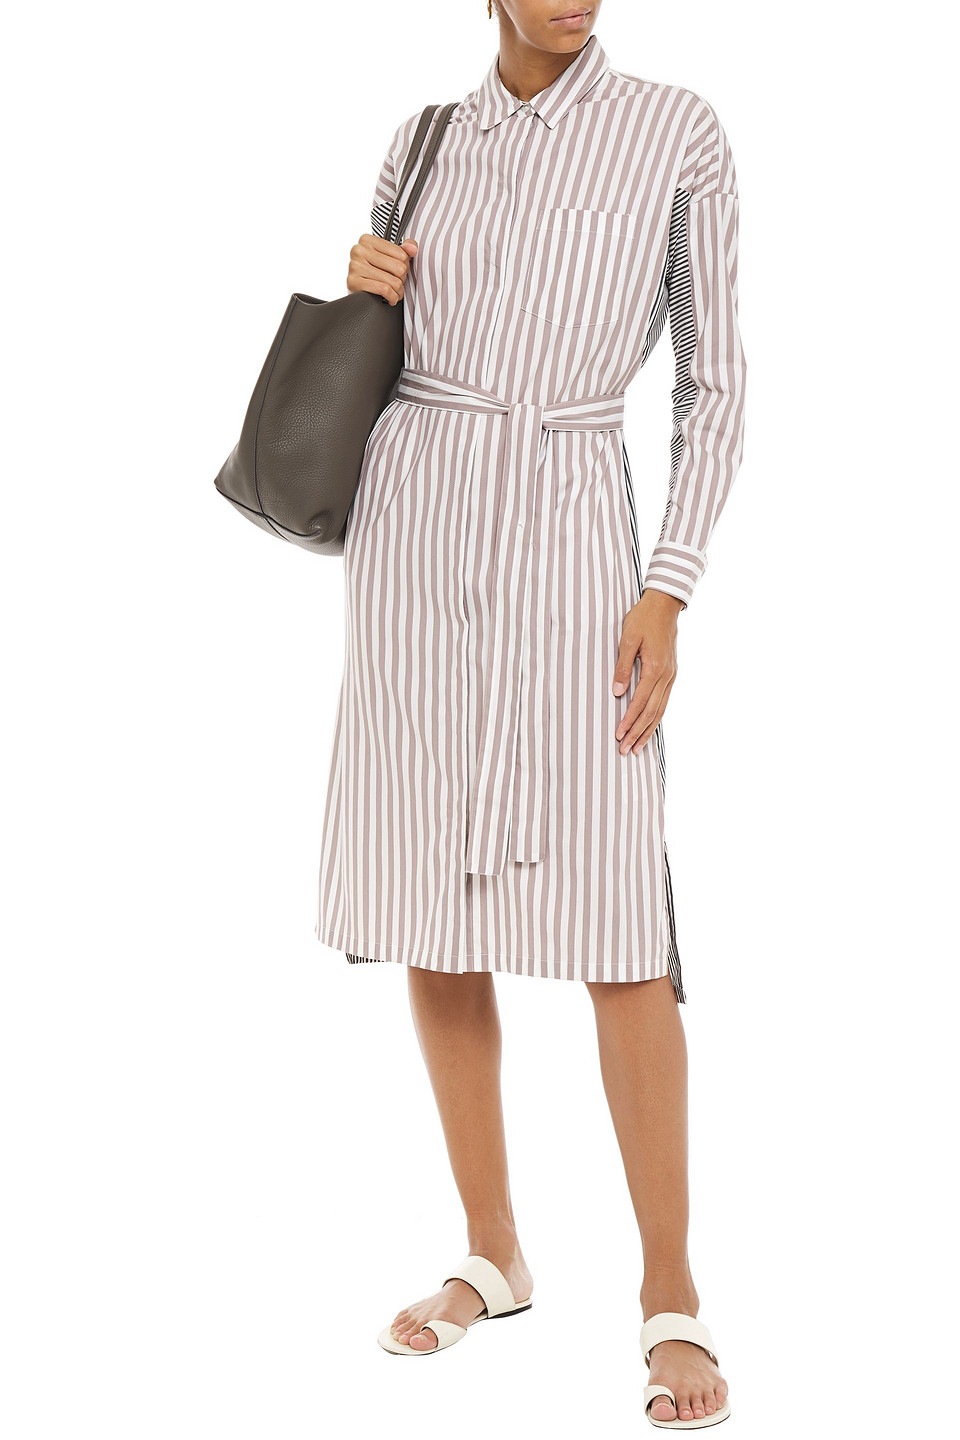 DKNY | Dkny Woman Paneled Striped Cotton-blend Poplin Midi Shirt Dress White | Clouty